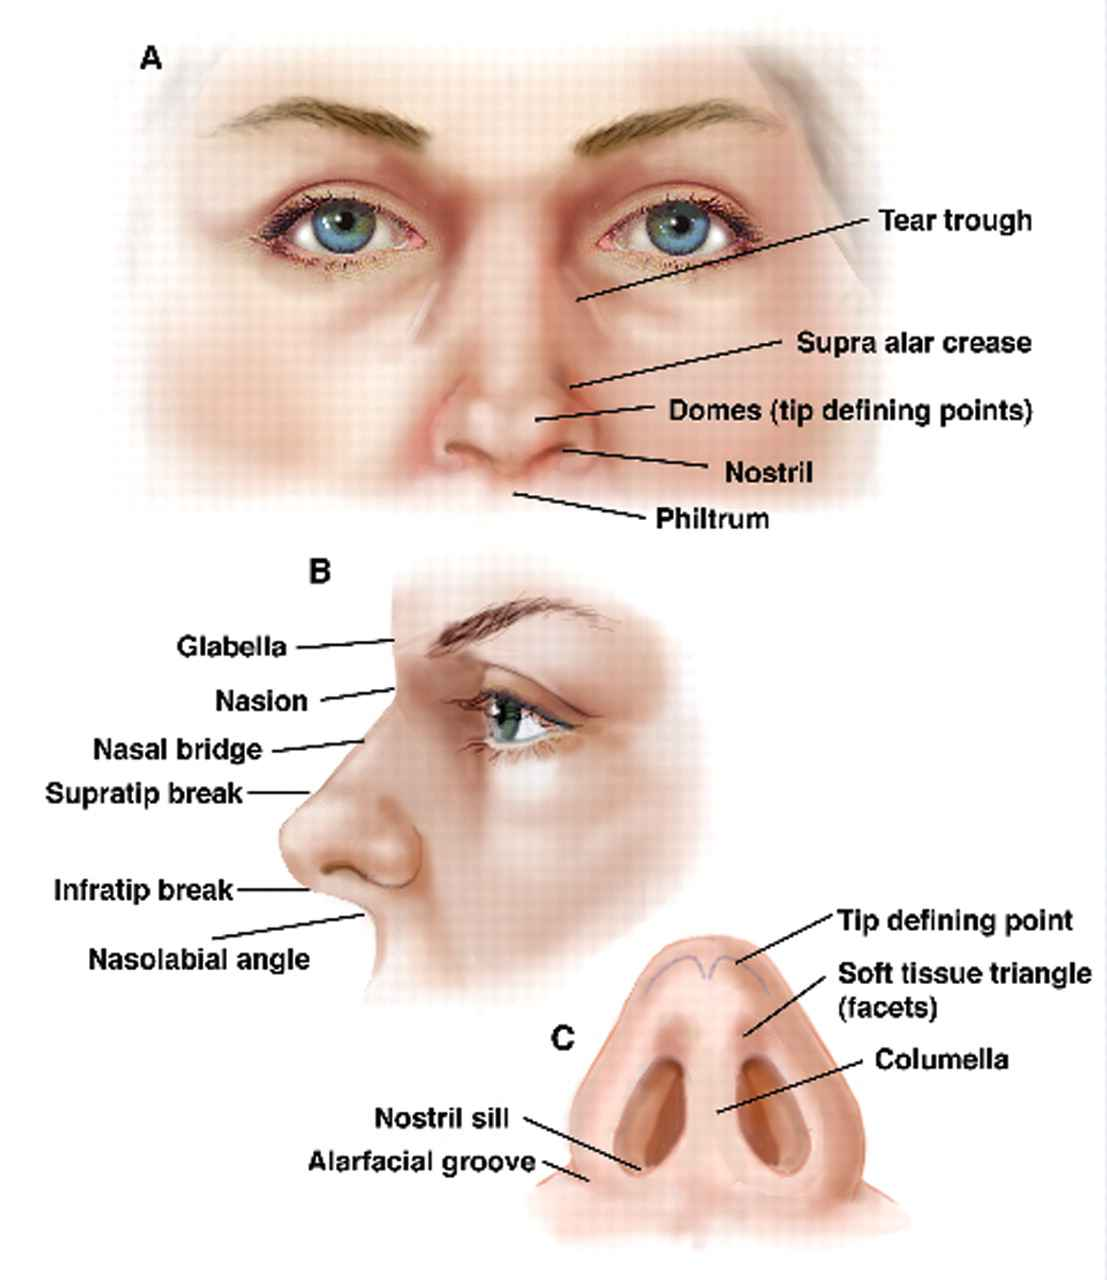 Human Anatomy Nose Diagram